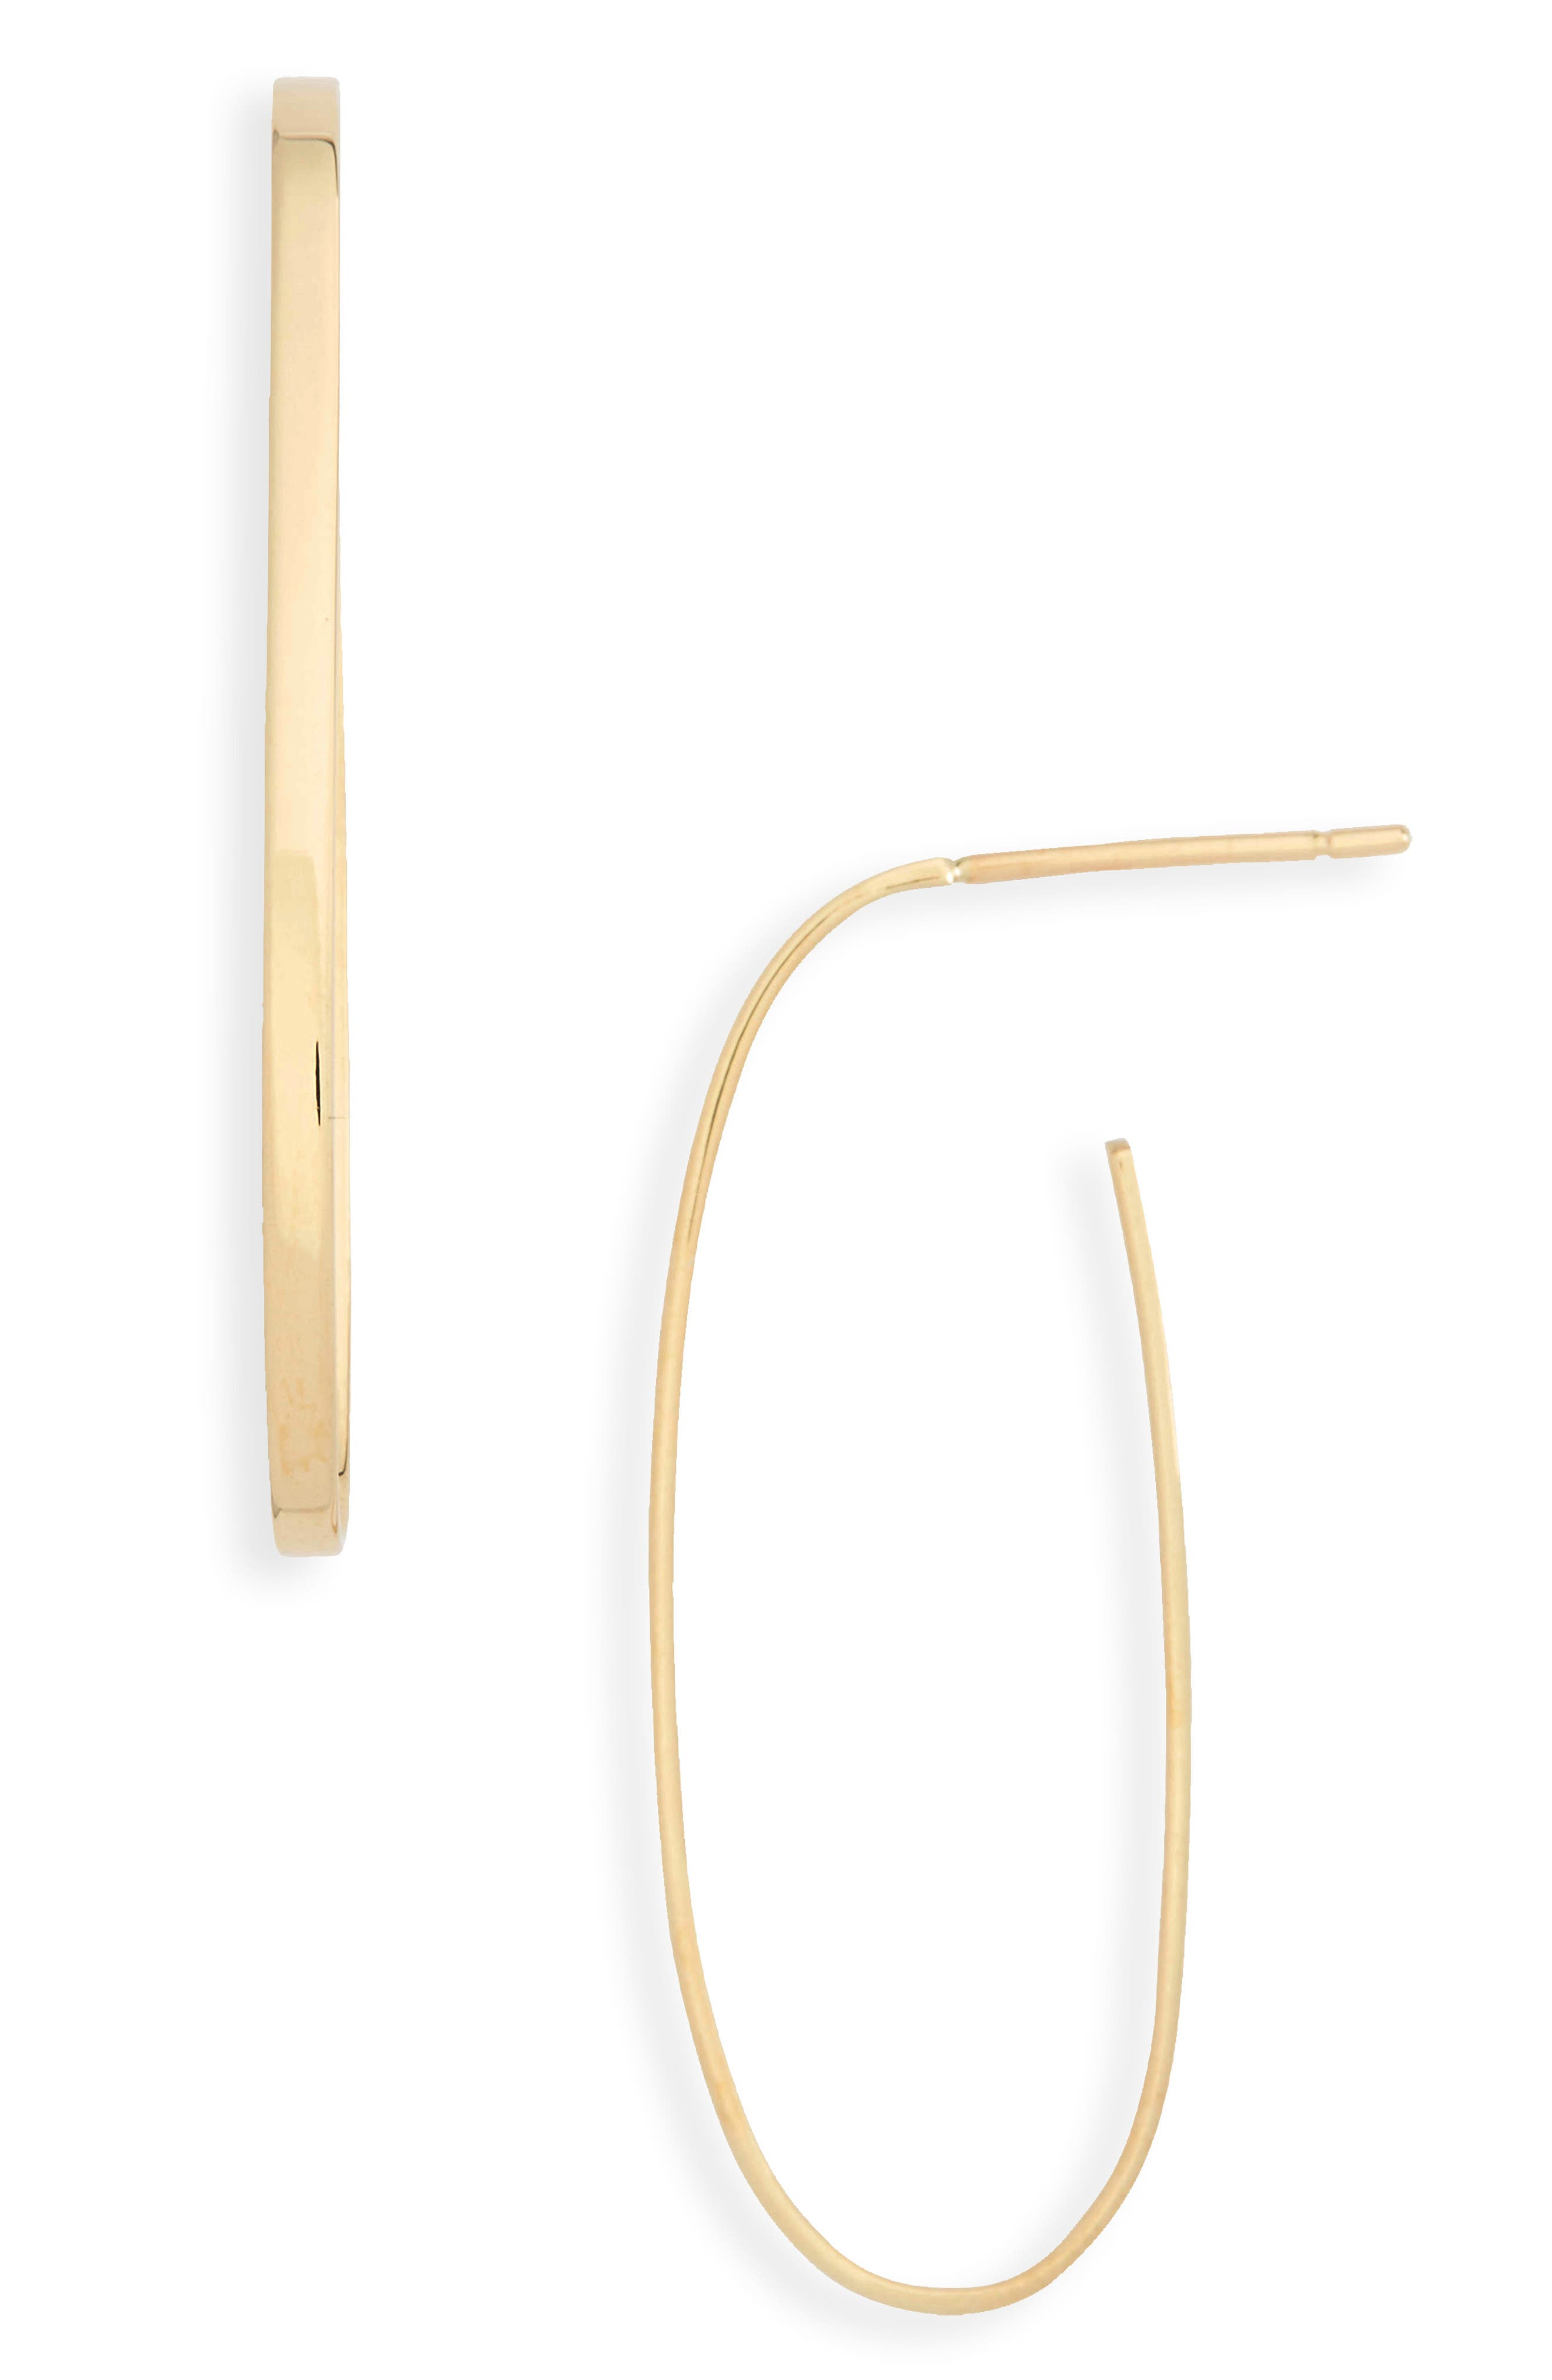 Flat Long Oval Hoop Earrings,                         Main,                         color, Yellow Gold